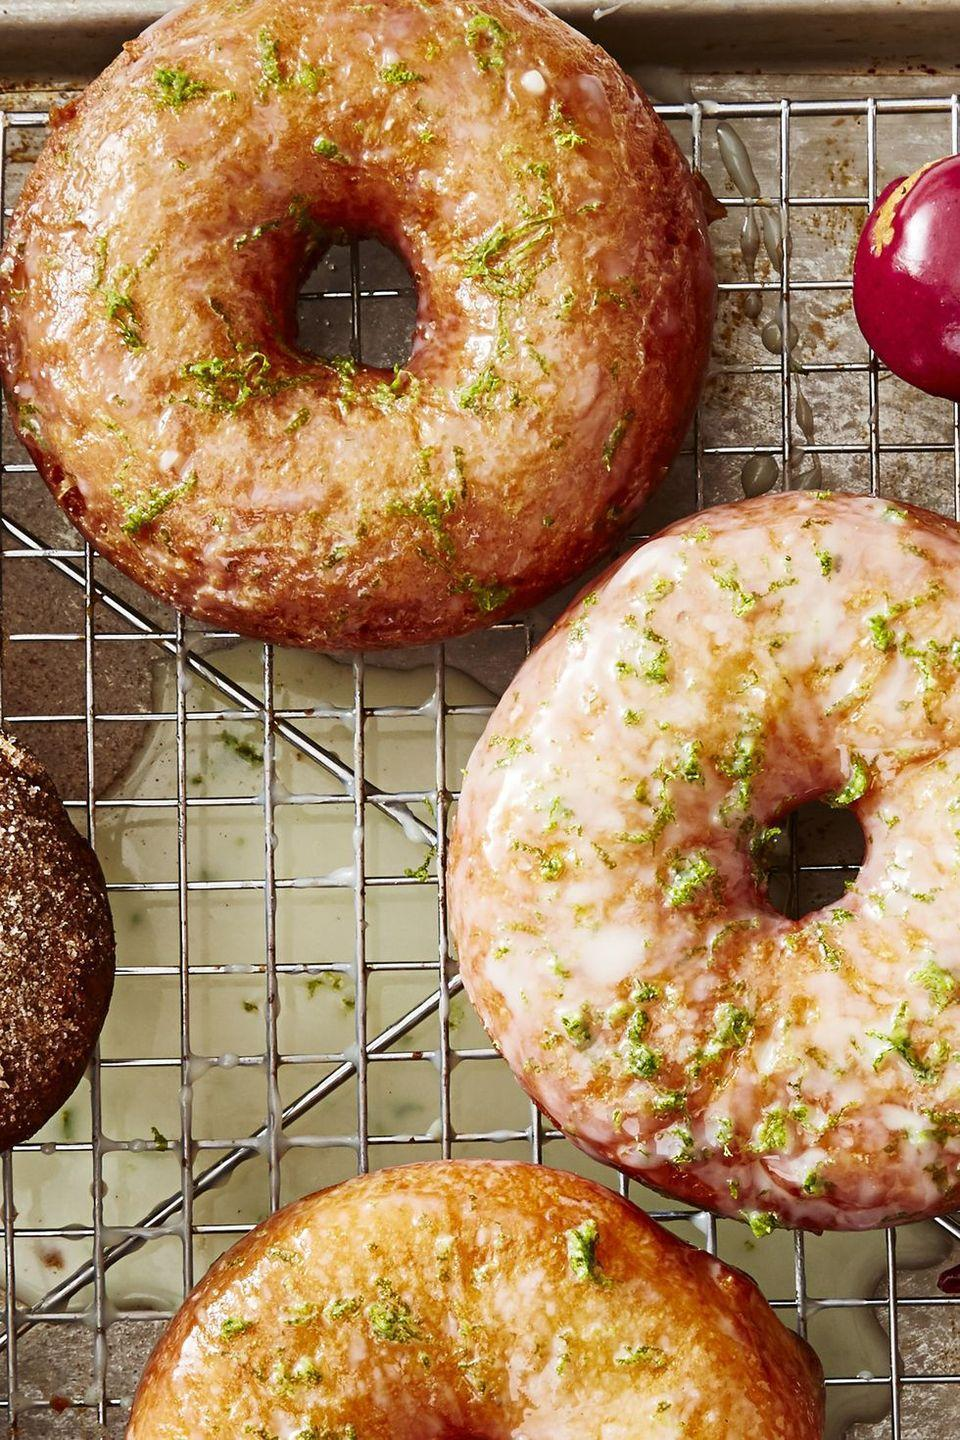 "<p>Here's something you can't get at your local donut shop.</p><p><em><a href=""https://www.goodhousekeeping.com/food-recipes/a48182/coconut-lime-donuts-recipe/"" rel=""nofollow noopener"" target=""_blank"" data-ylk=""slk:Get the recipe for Coconut-Lime Donuts »"" class=""link rapid-noclick-resp"">Get the recipe for Coconut-Lime Donuts »</a></em></p>"